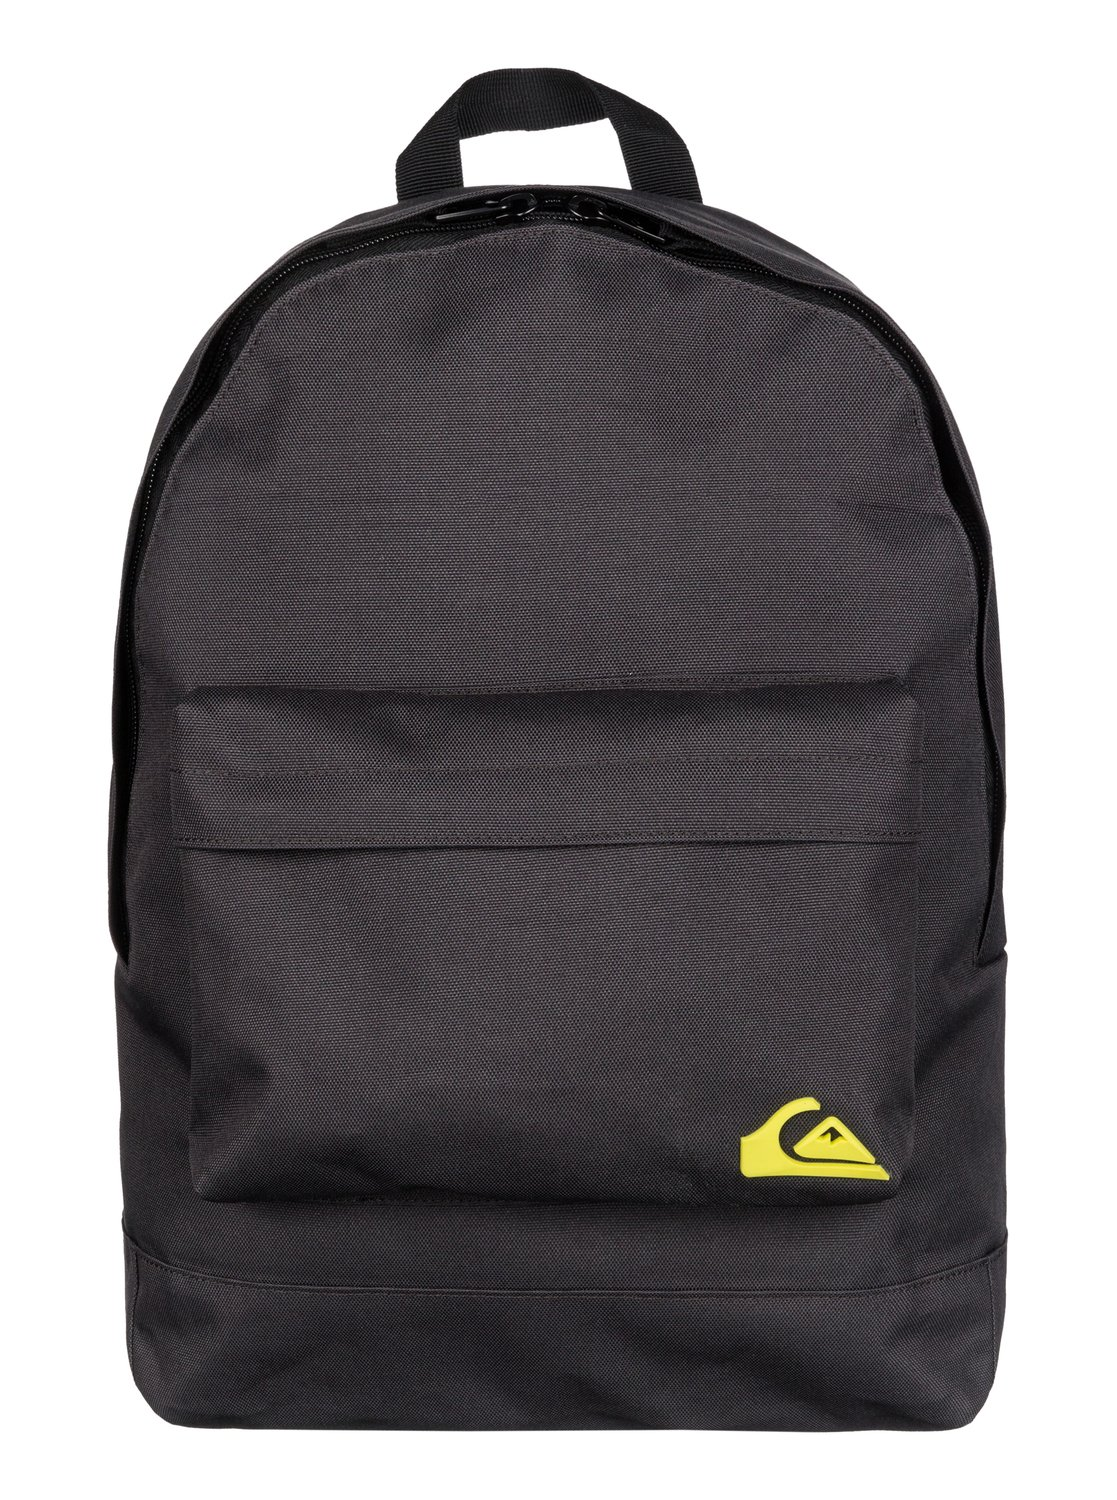 Quiksilver Sac à dos Shd Everyday Edition